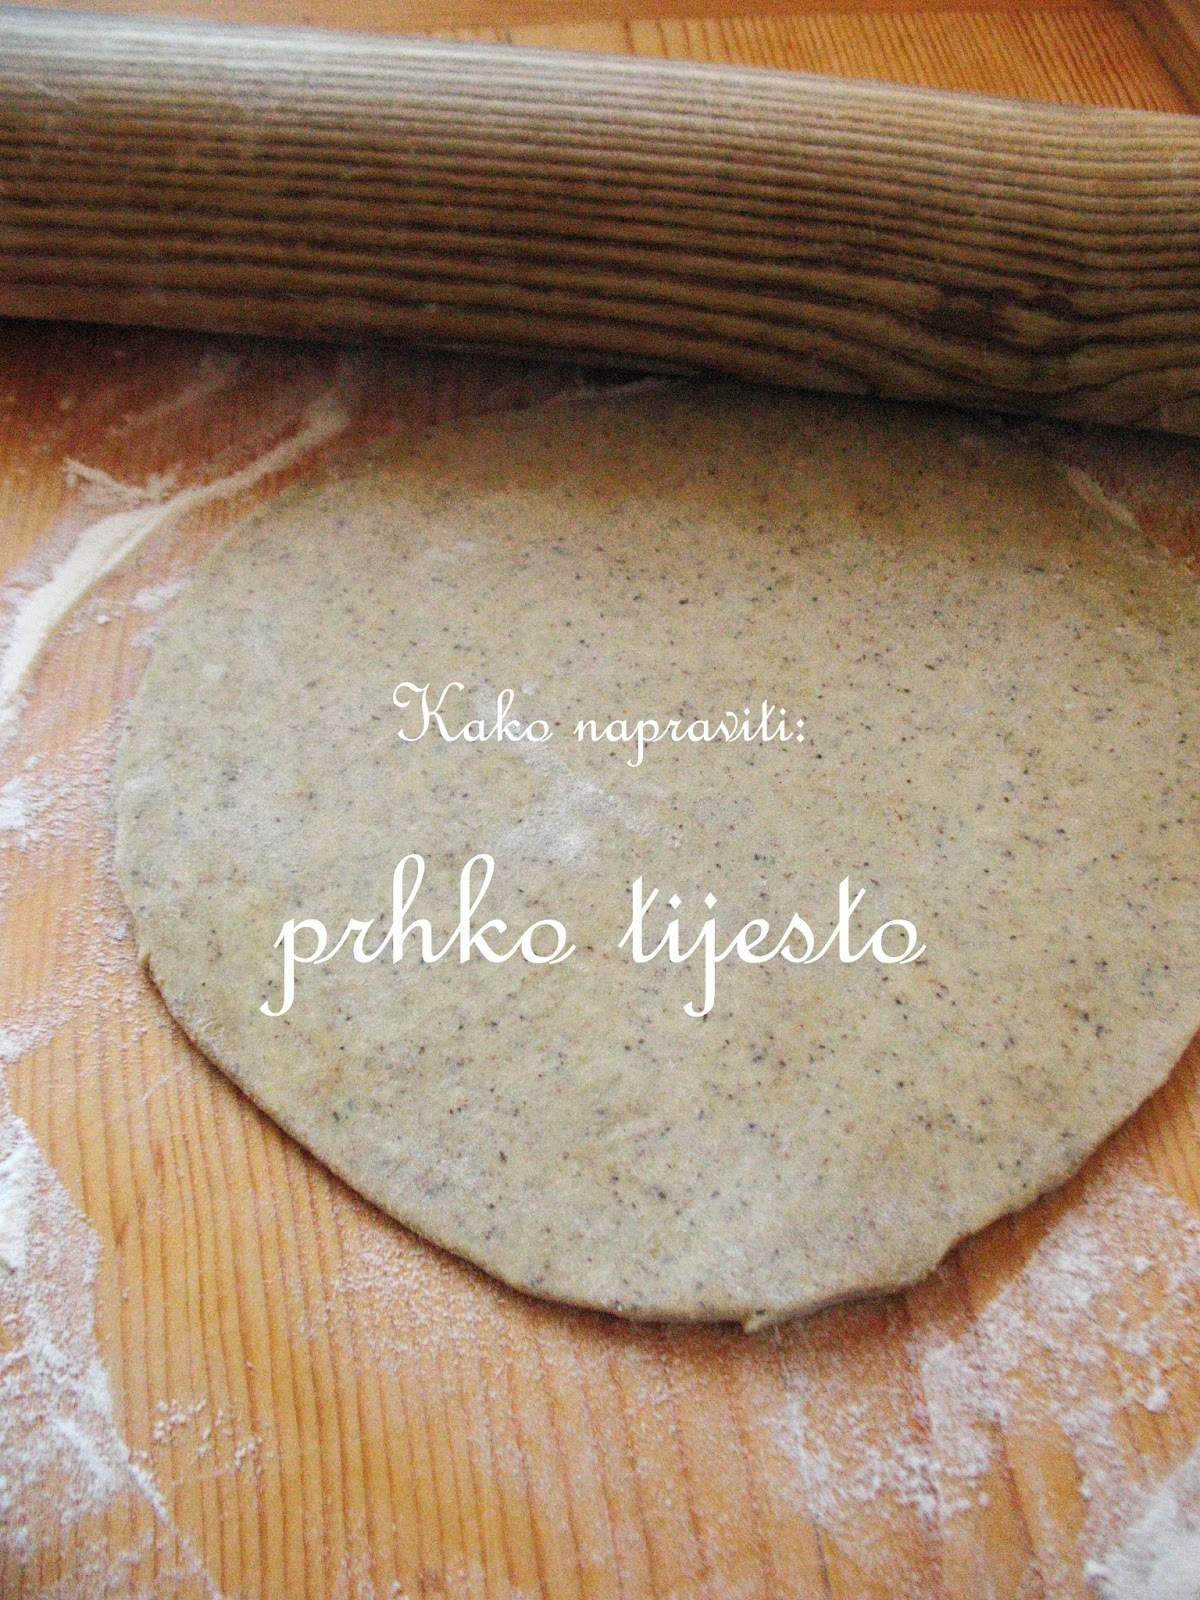 Tutorial: prhko tijesto/ Shortcrust pastry recipes